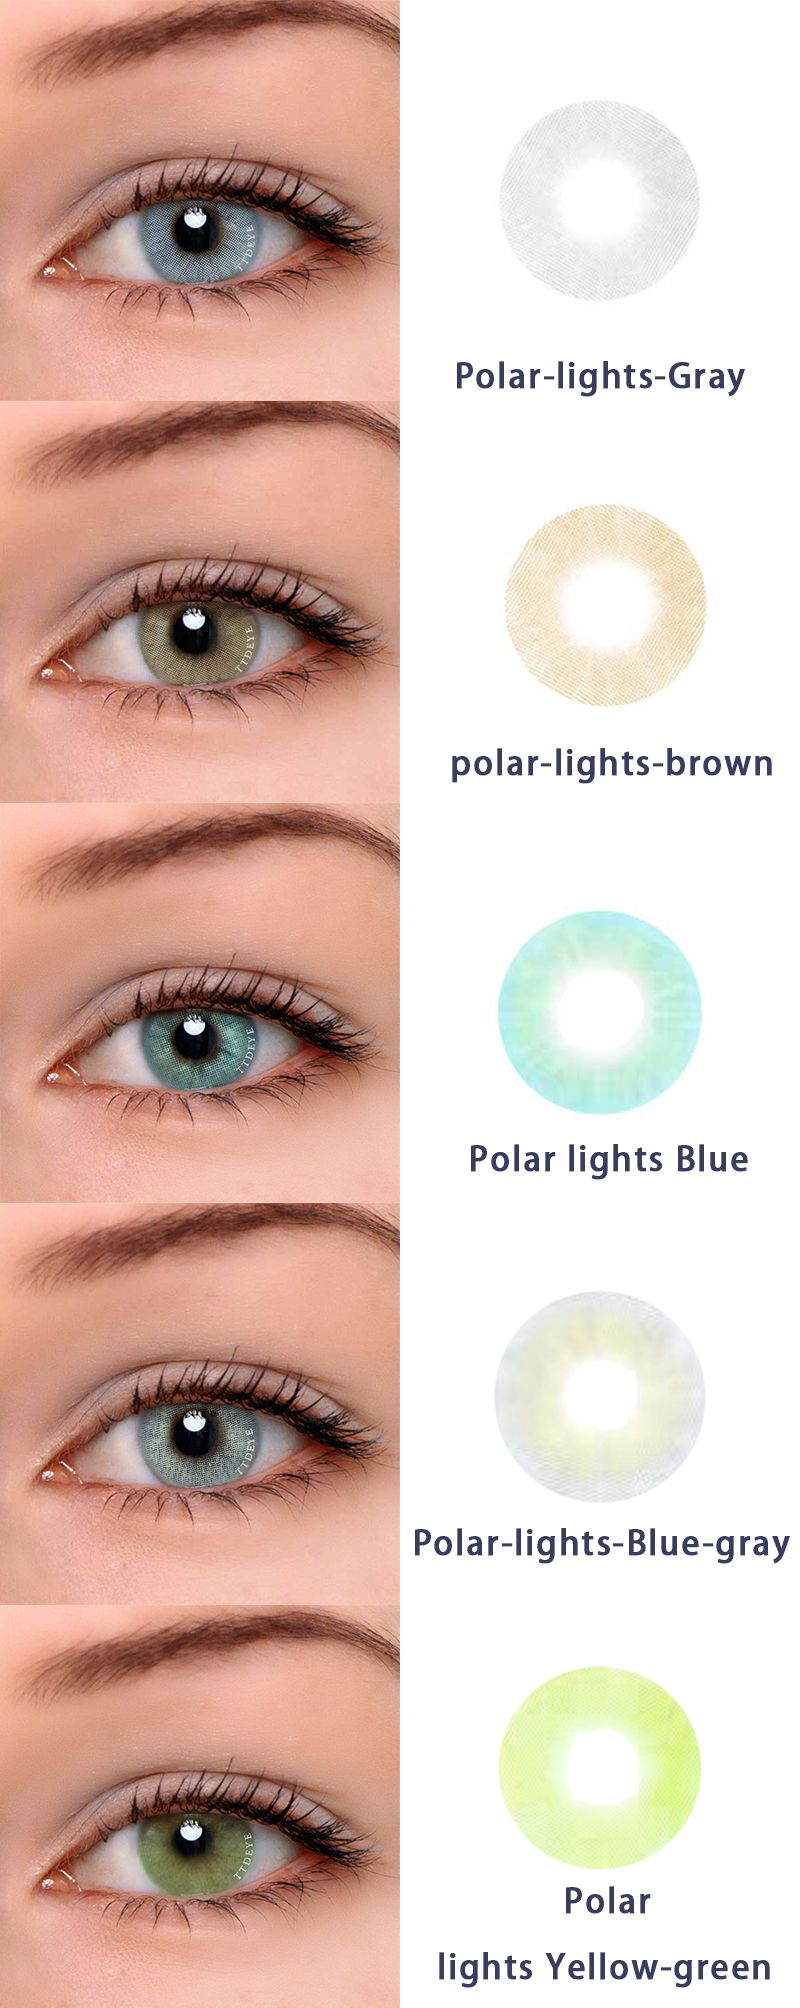 dee1479817 Green Colored Contacts · Lenses Eye · ttdeye.com Hot sale series-Polar  lights. They are polar-lights gray